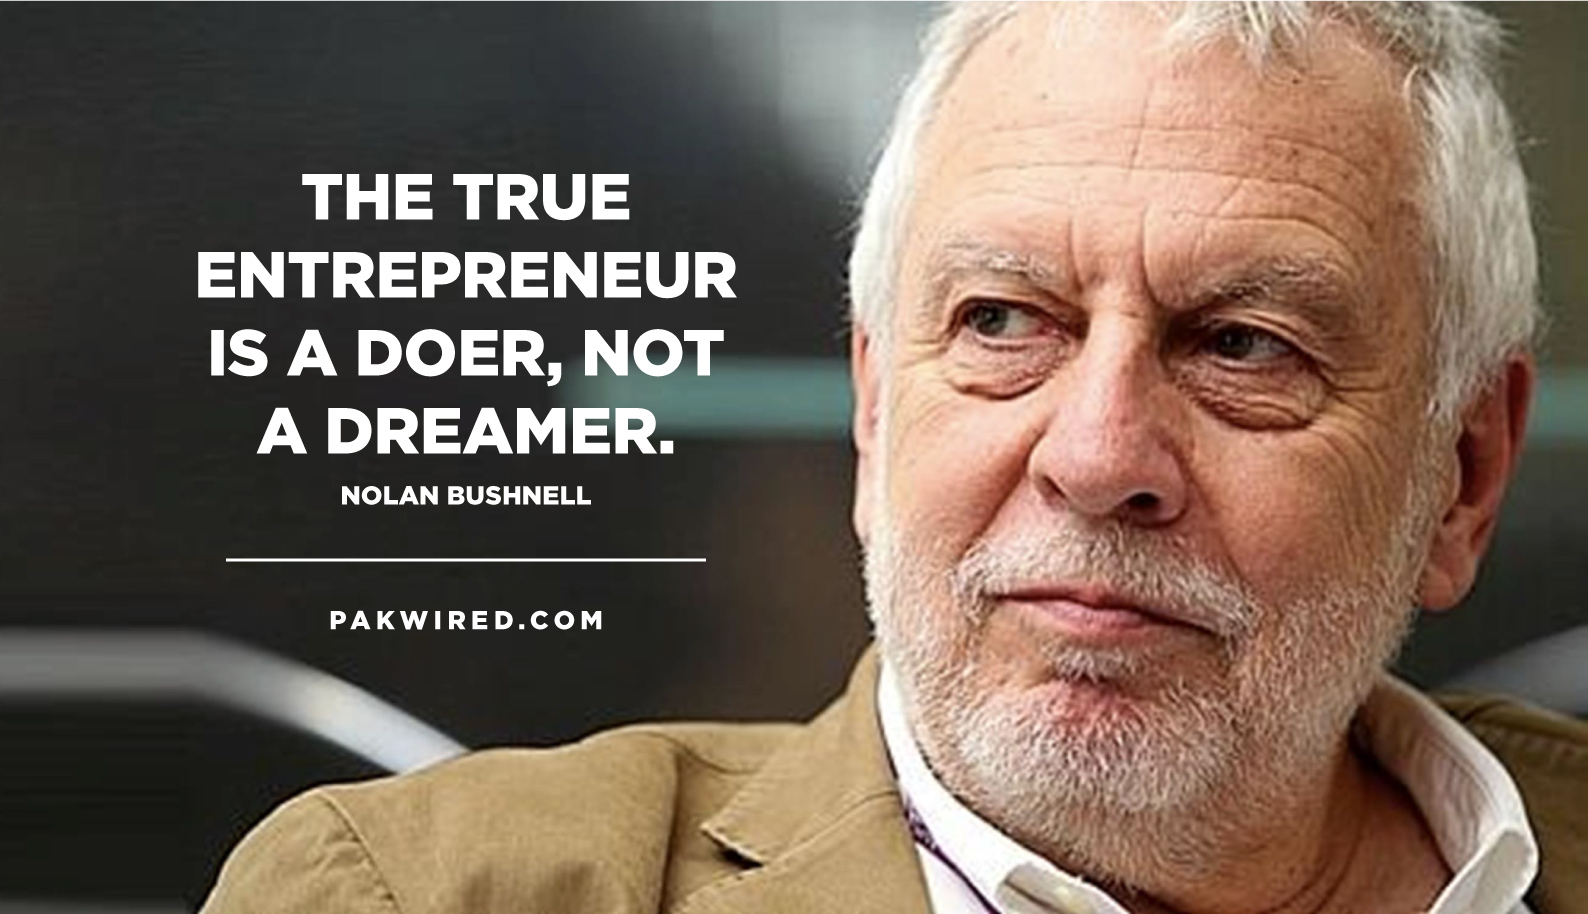 The true entrepreneur is a doer, not a dreamer.